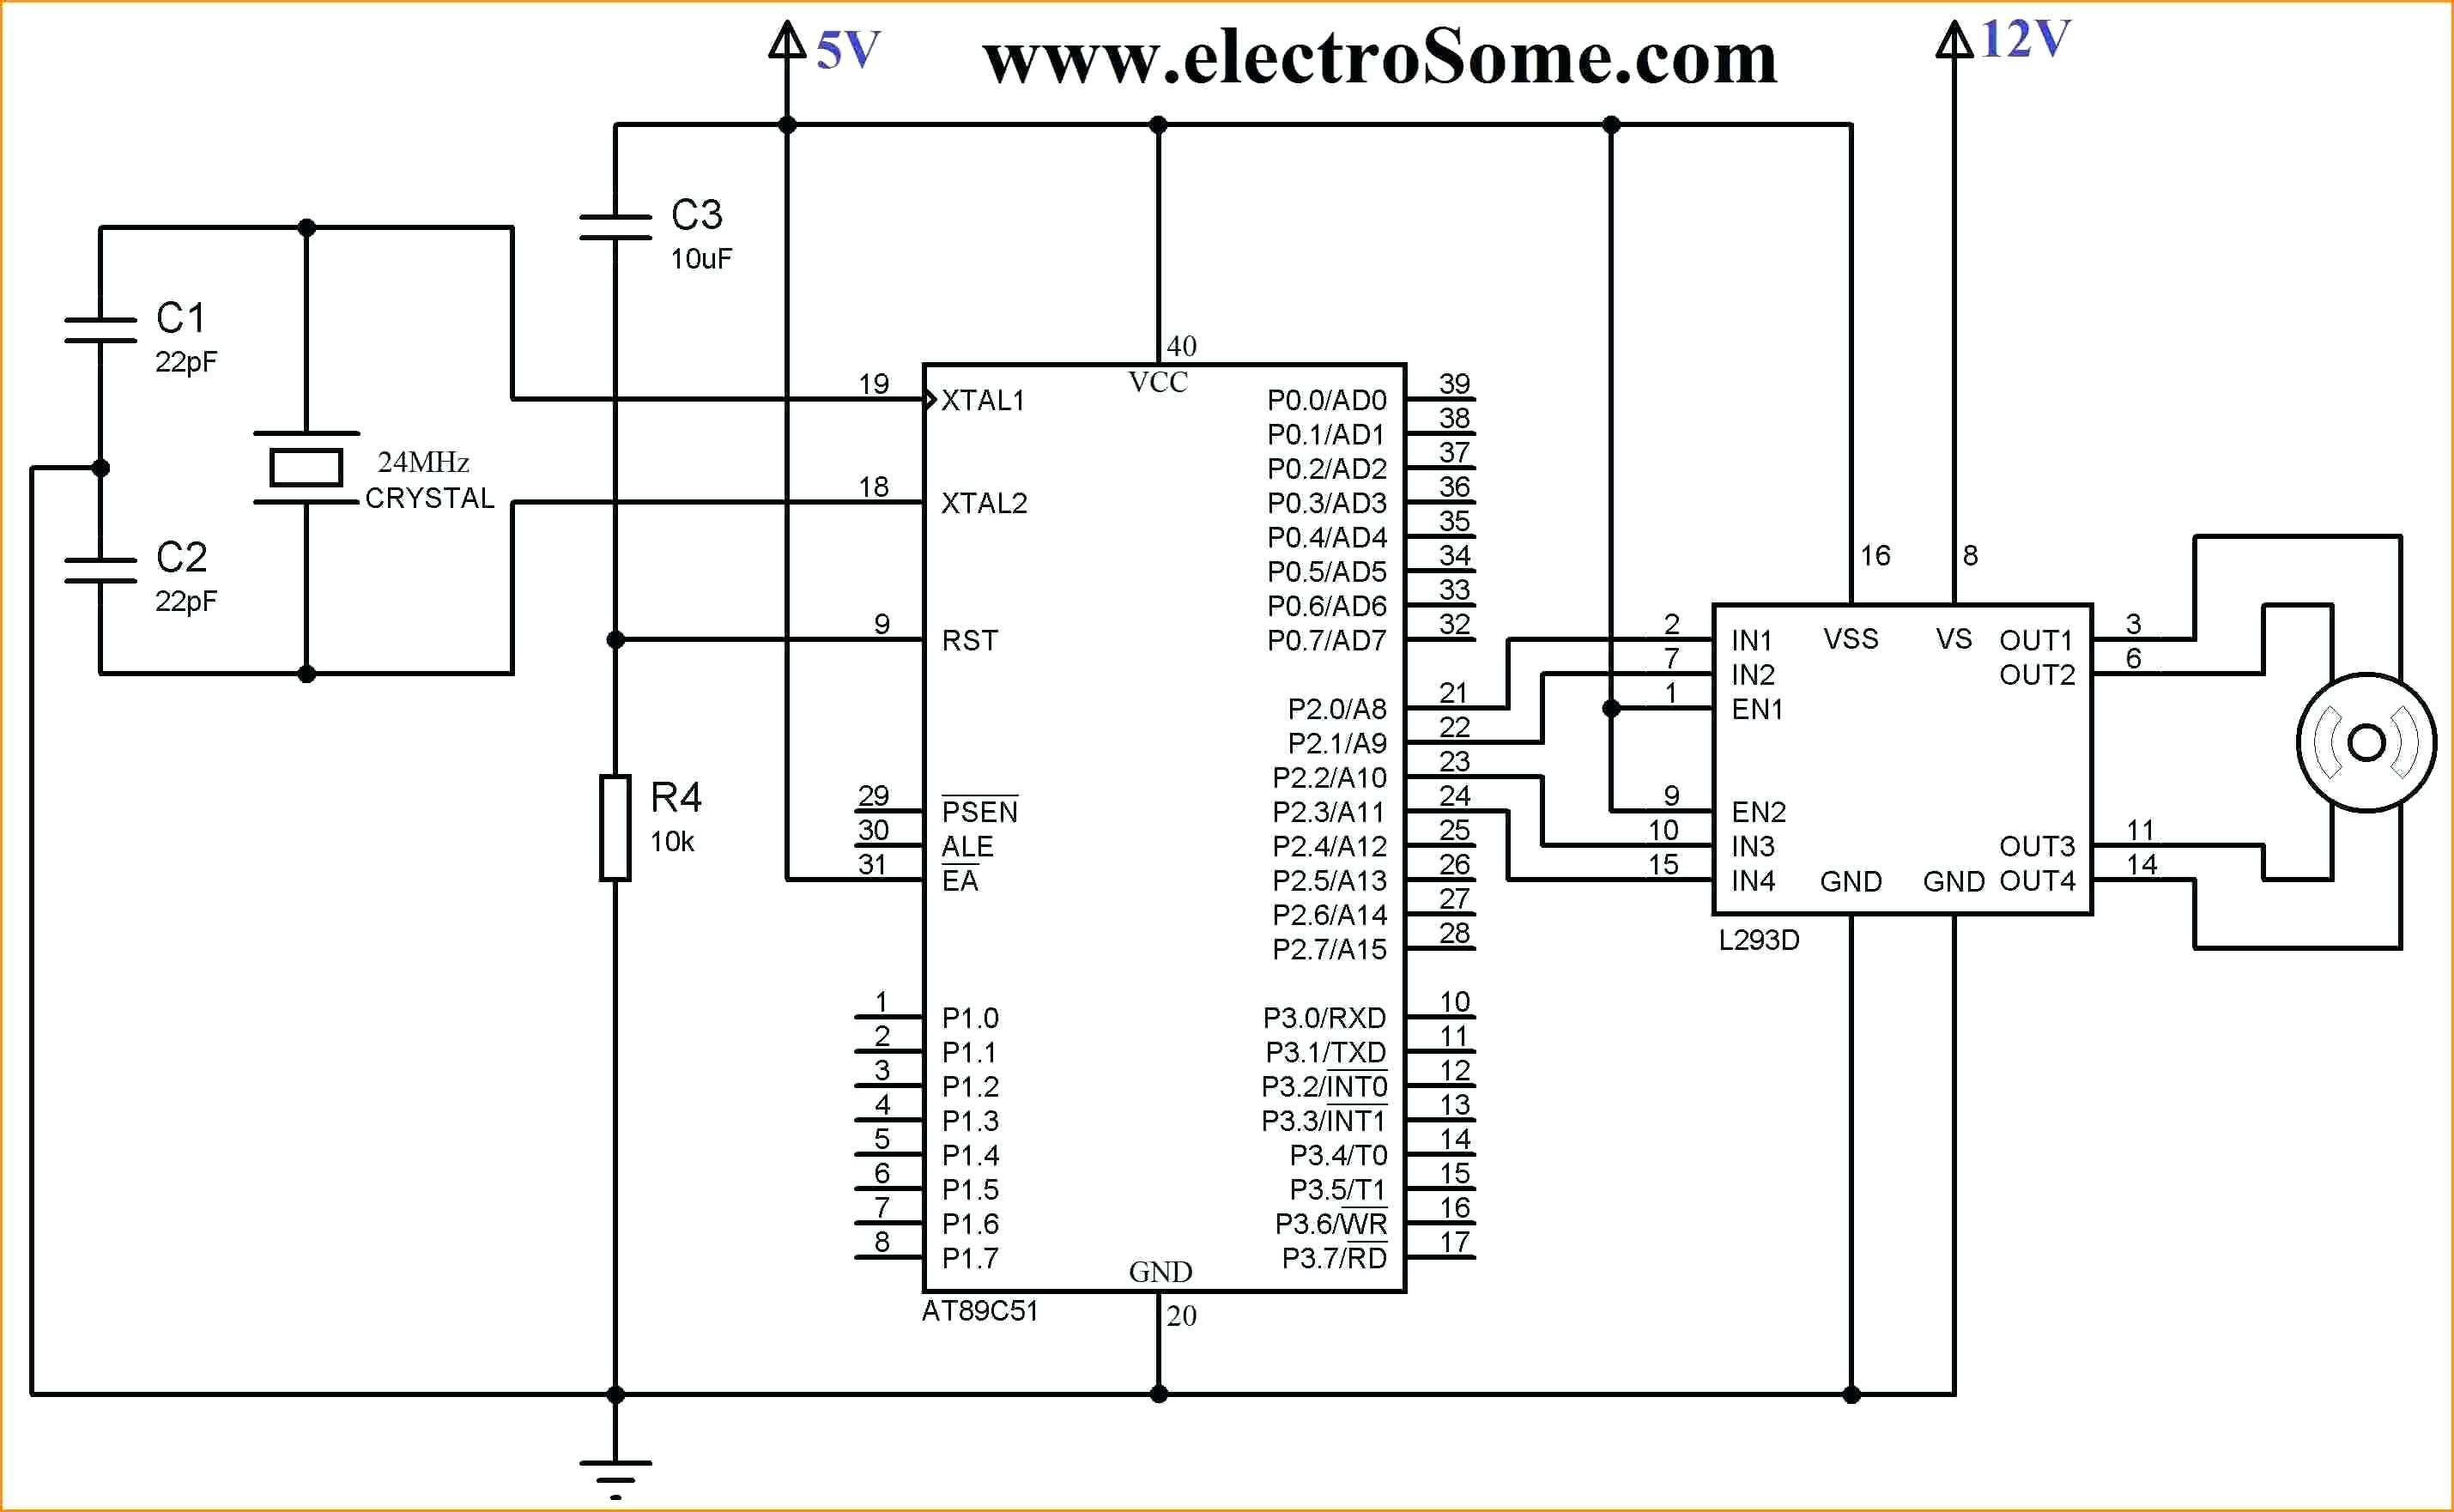 taco circulator pump wiring diagram Download-Wiring Diagram Honeywell 3 Port Zone Valve Save Taco Circulator Pump Wiring Diagram Lovely Honeywell Zone 10-i